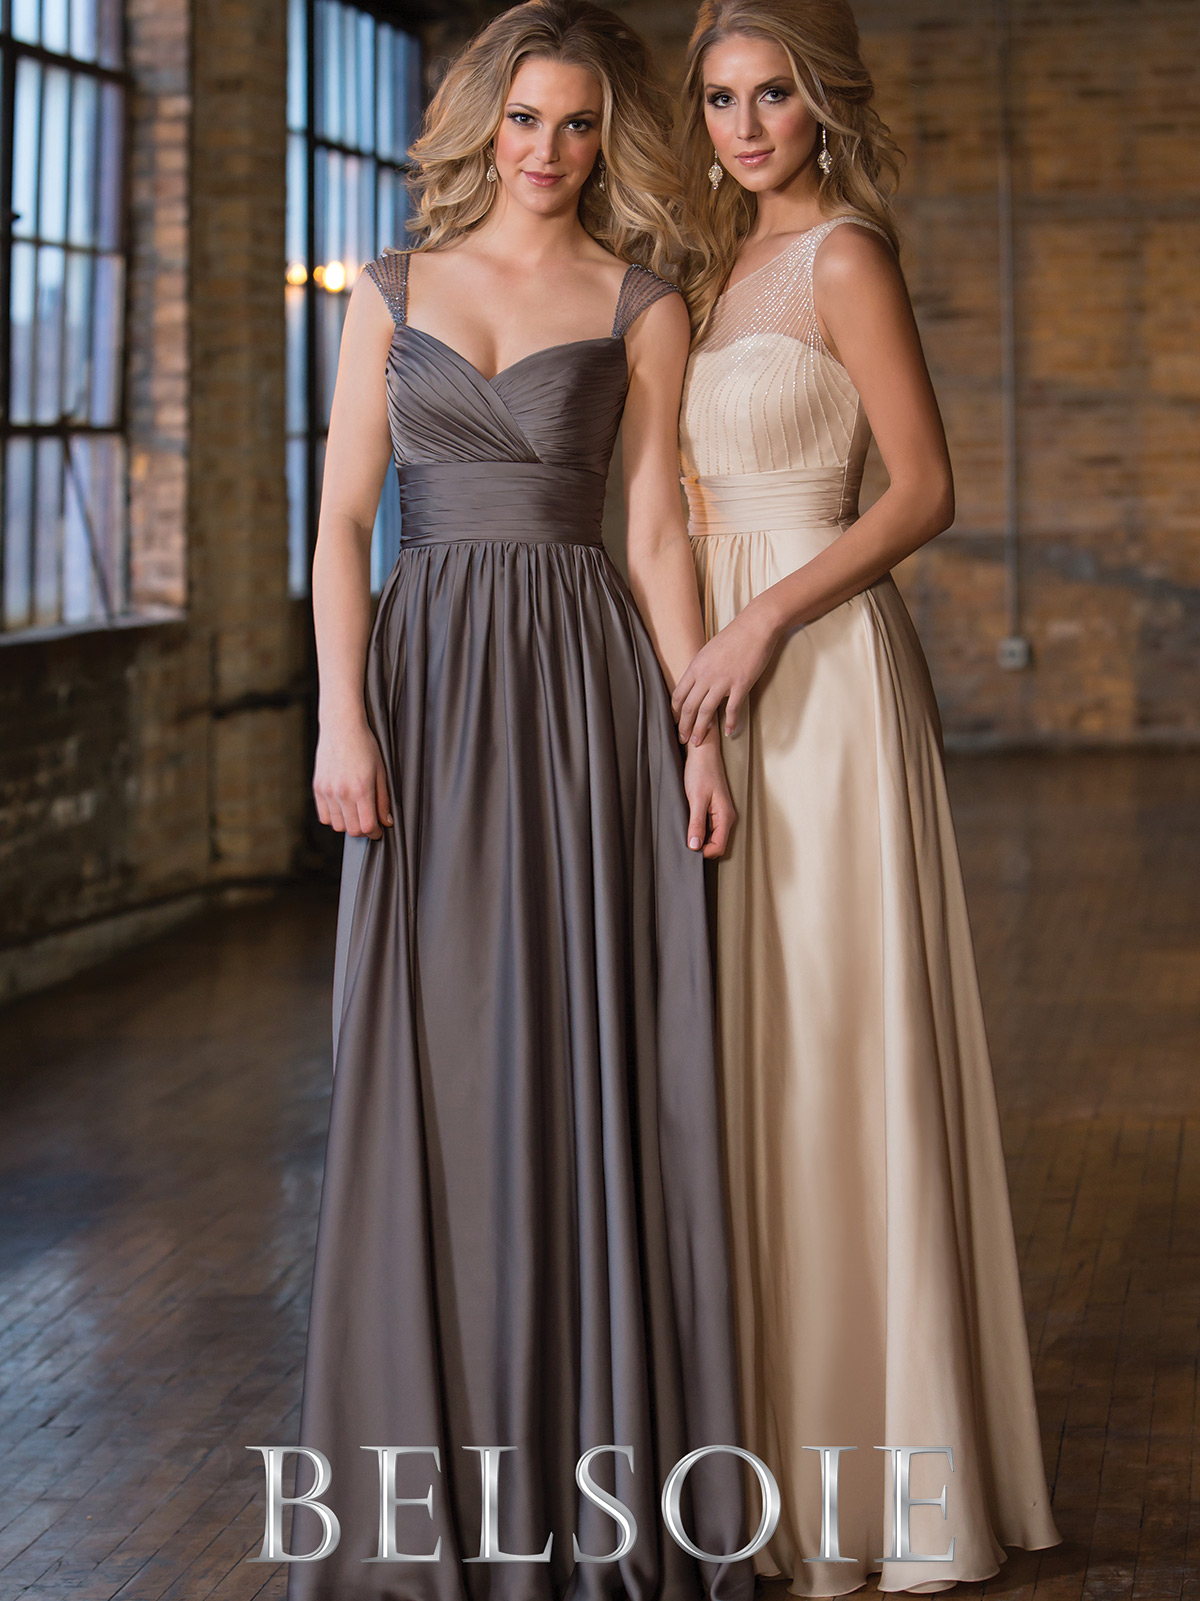 Belsoie bridesmaid dress l164055 dimitradesigns sophisticated satin chiffon floor length bridesmaid dress belsoie l164055 ombrellifo Images